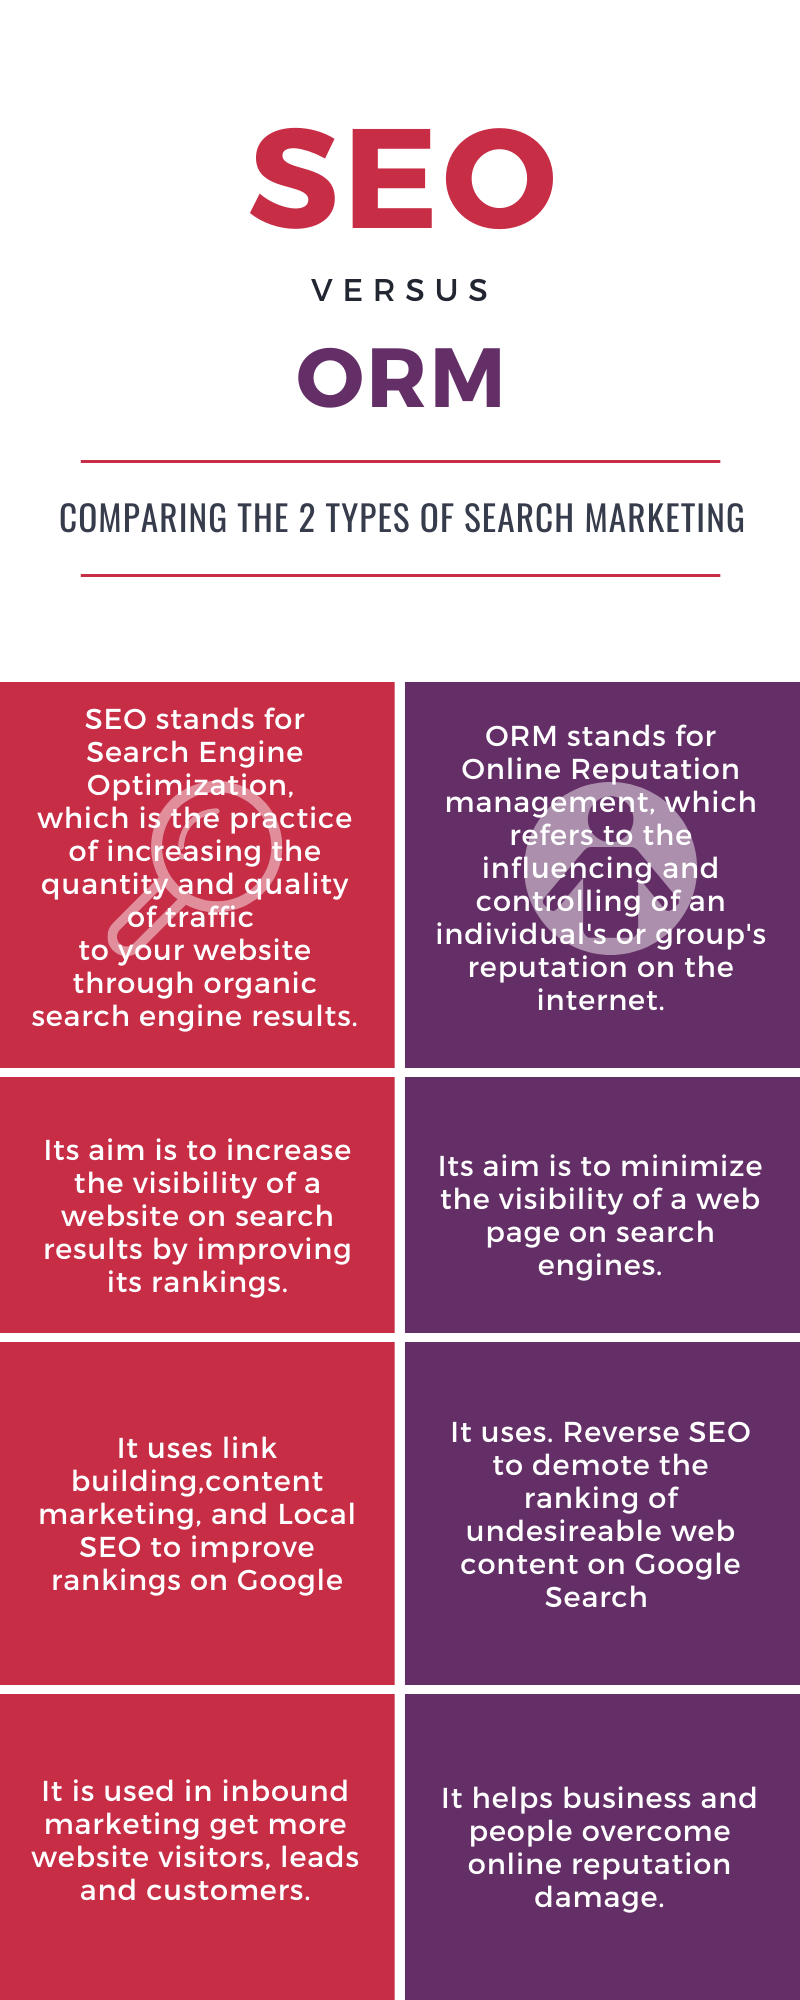 SEO and ORM Infographic